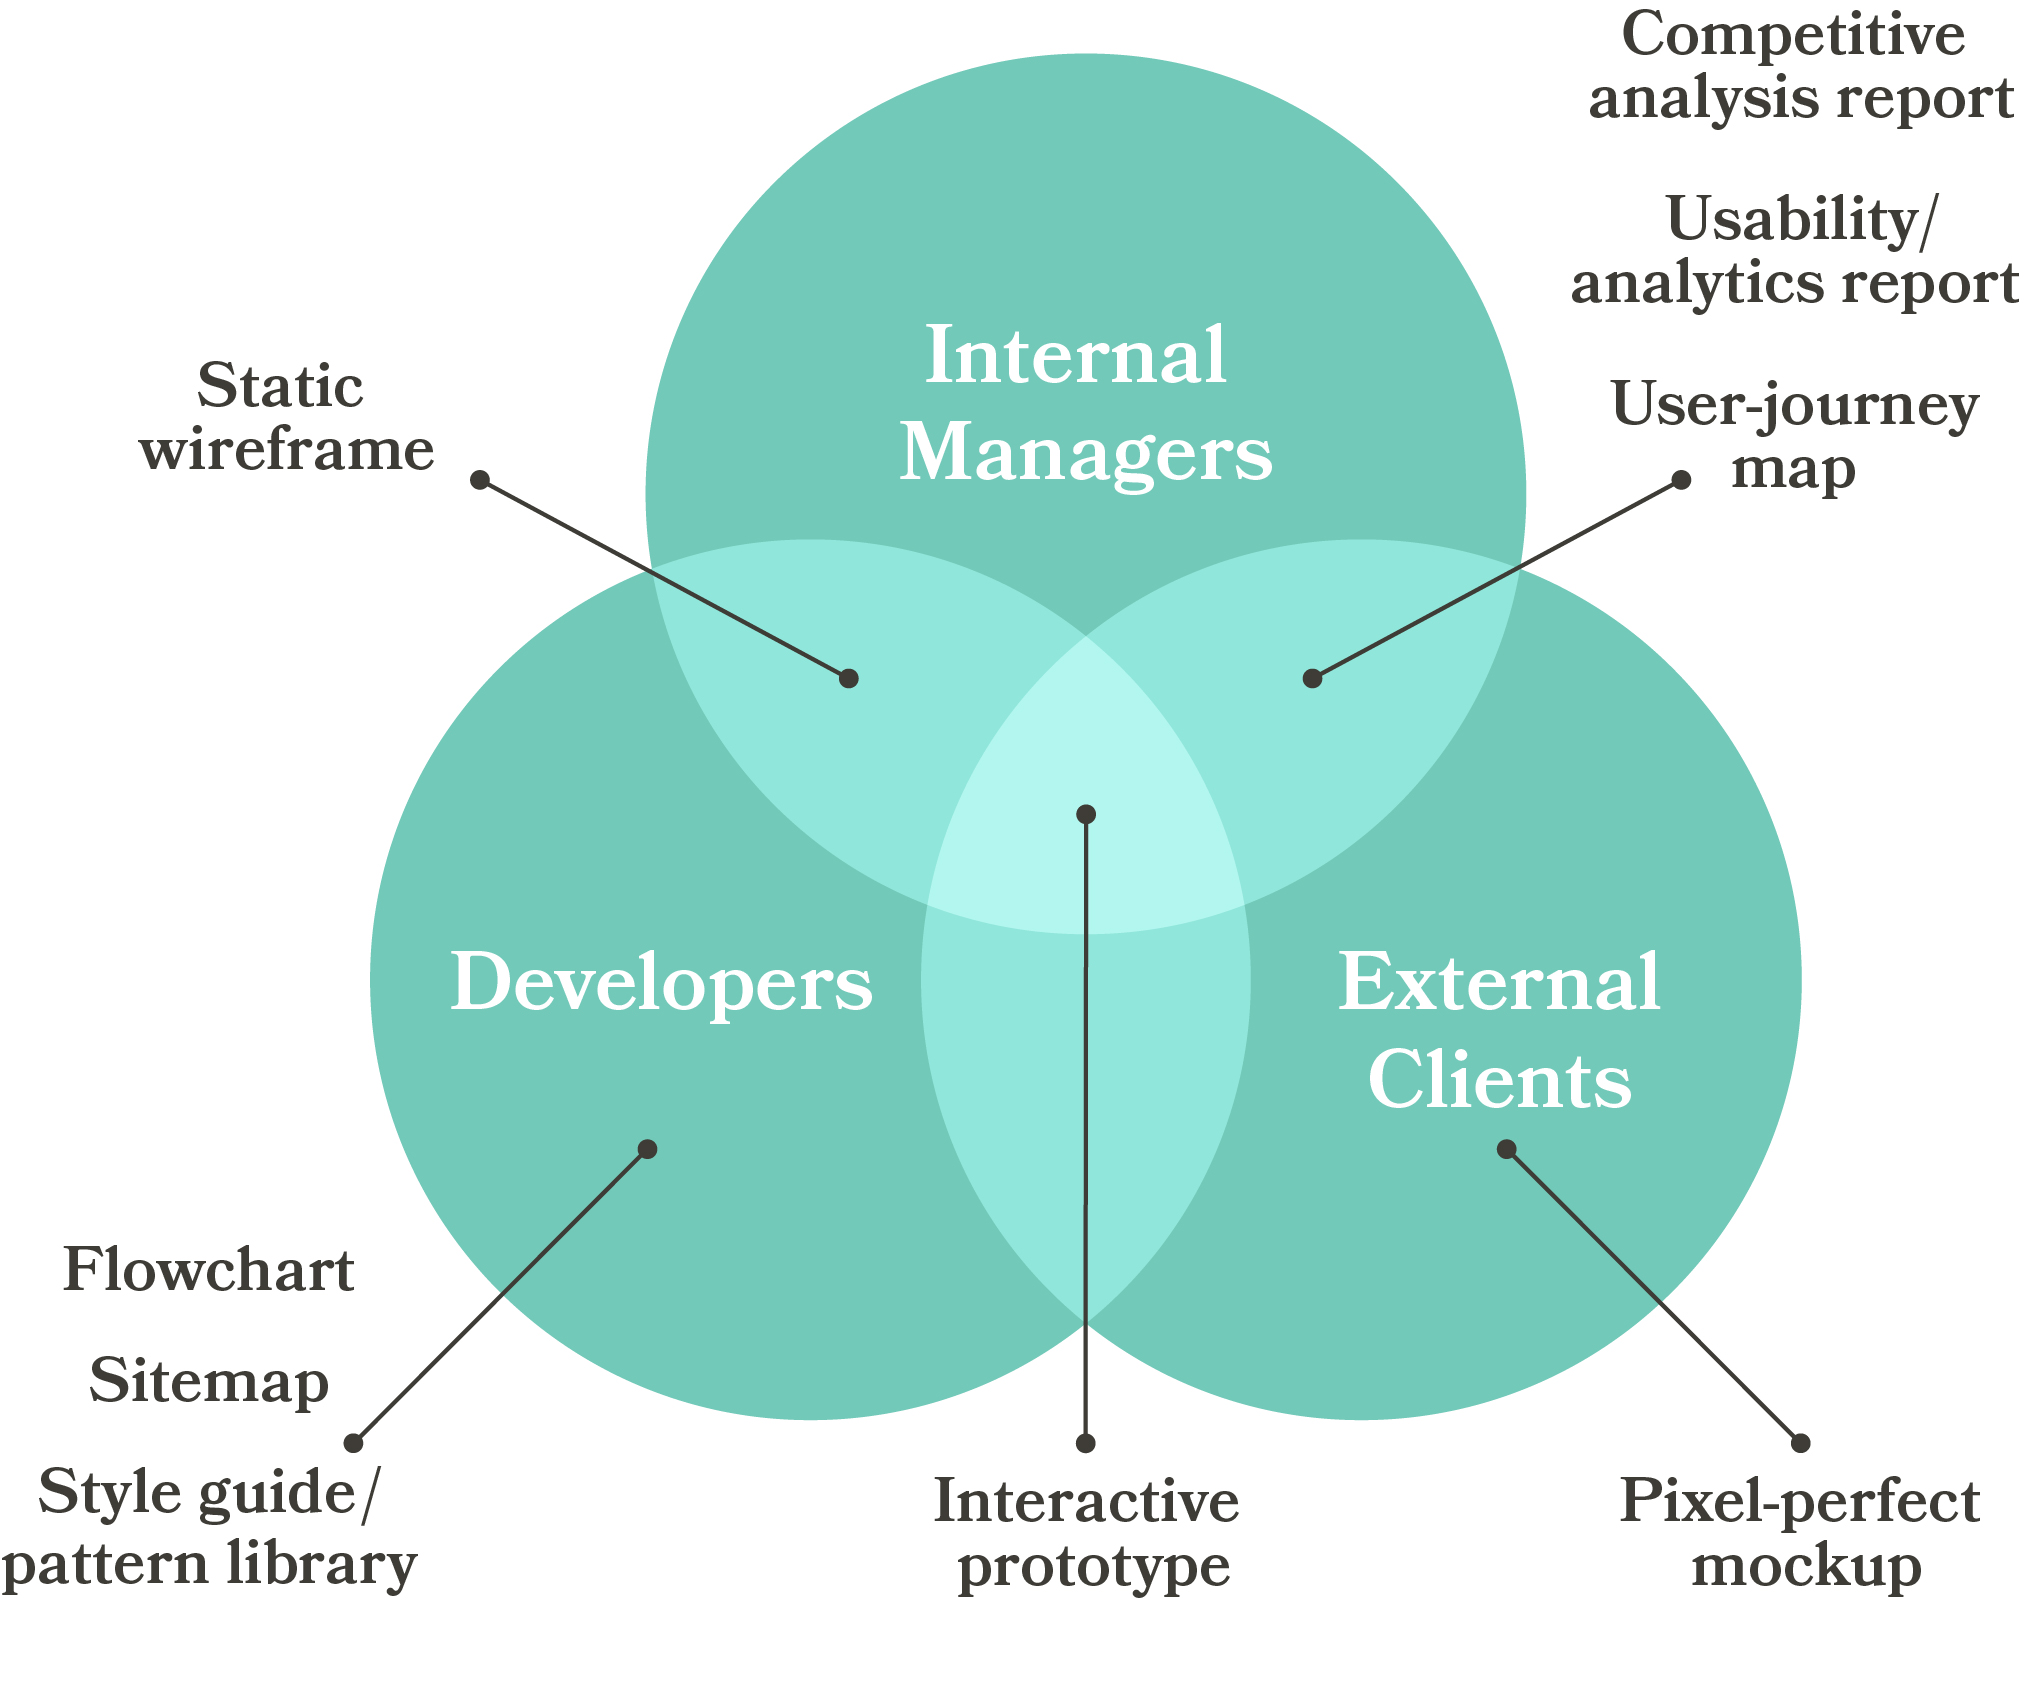 Venn diagram showing the types of UX deliverables appropriate to different audiences (adapted from nngroup - click for details)